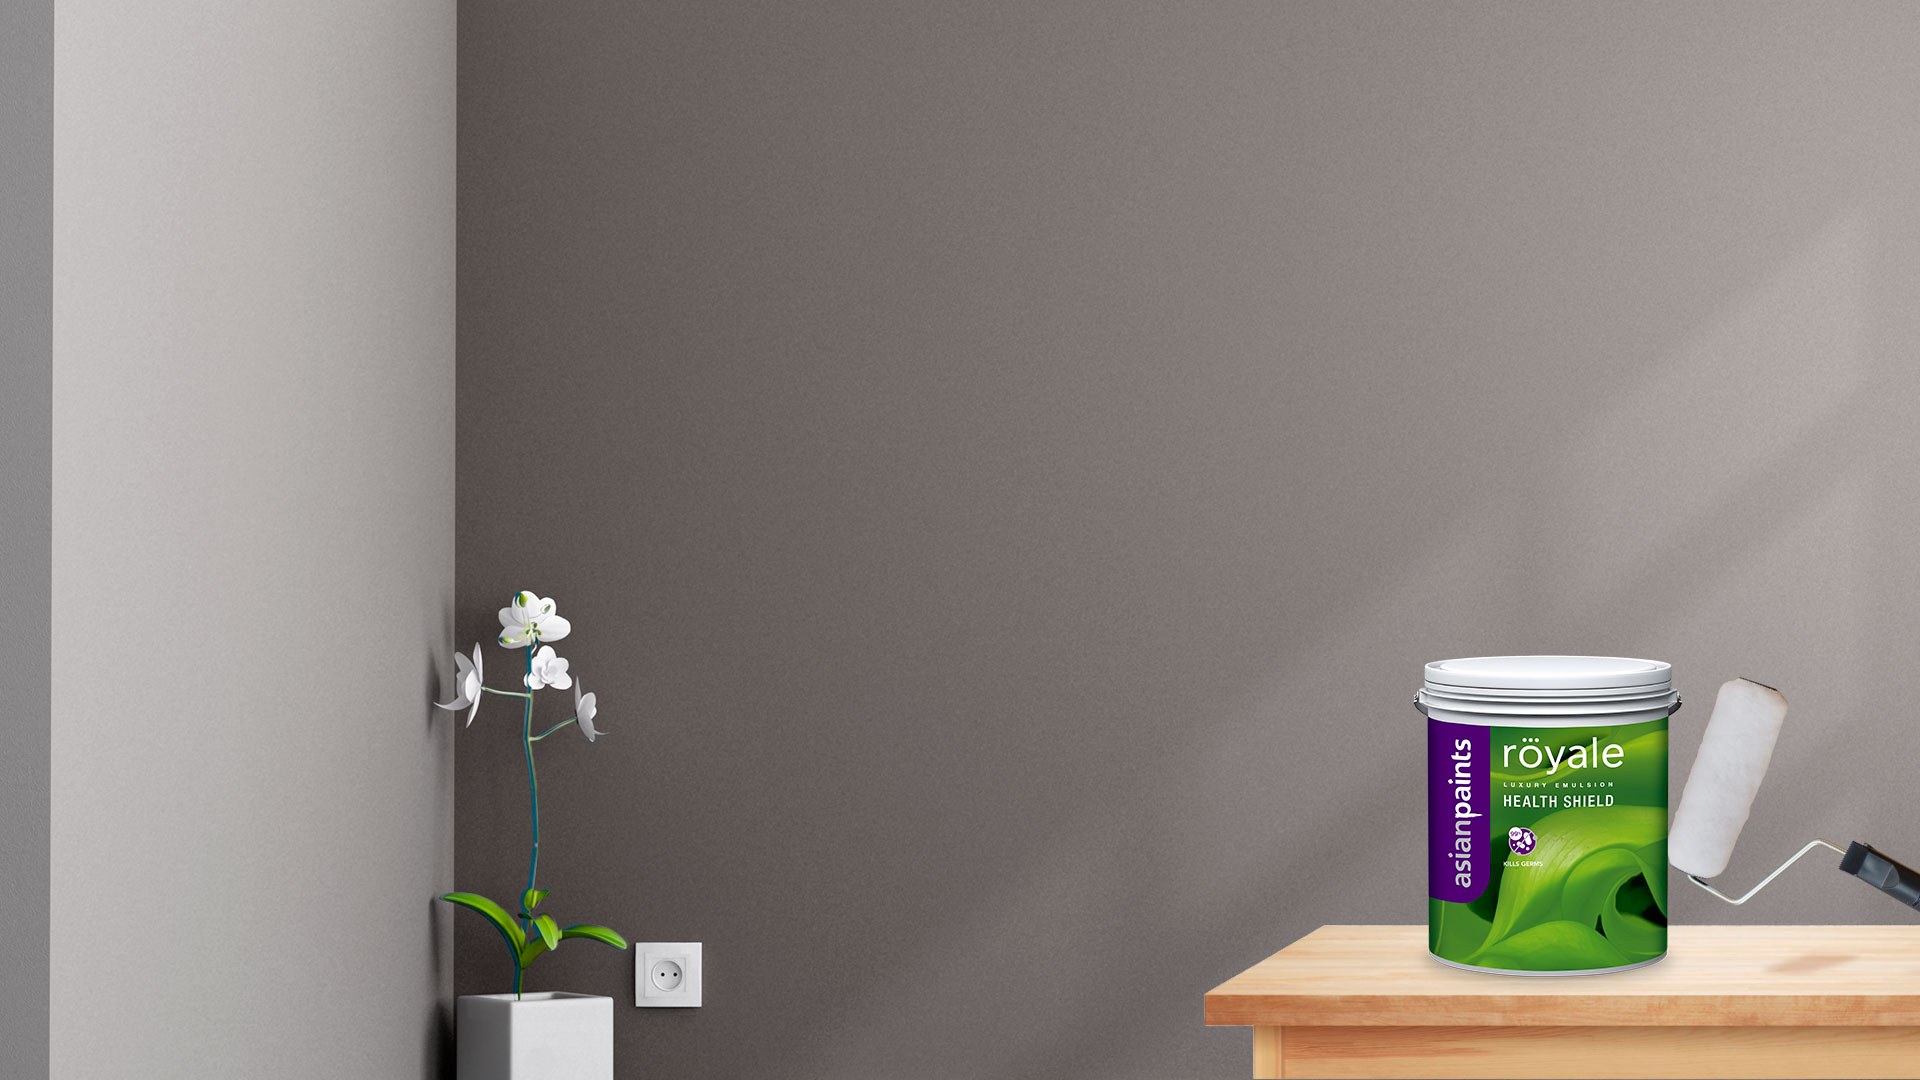 Anti Bacterial Paint for a Healthy Home - Royale Health